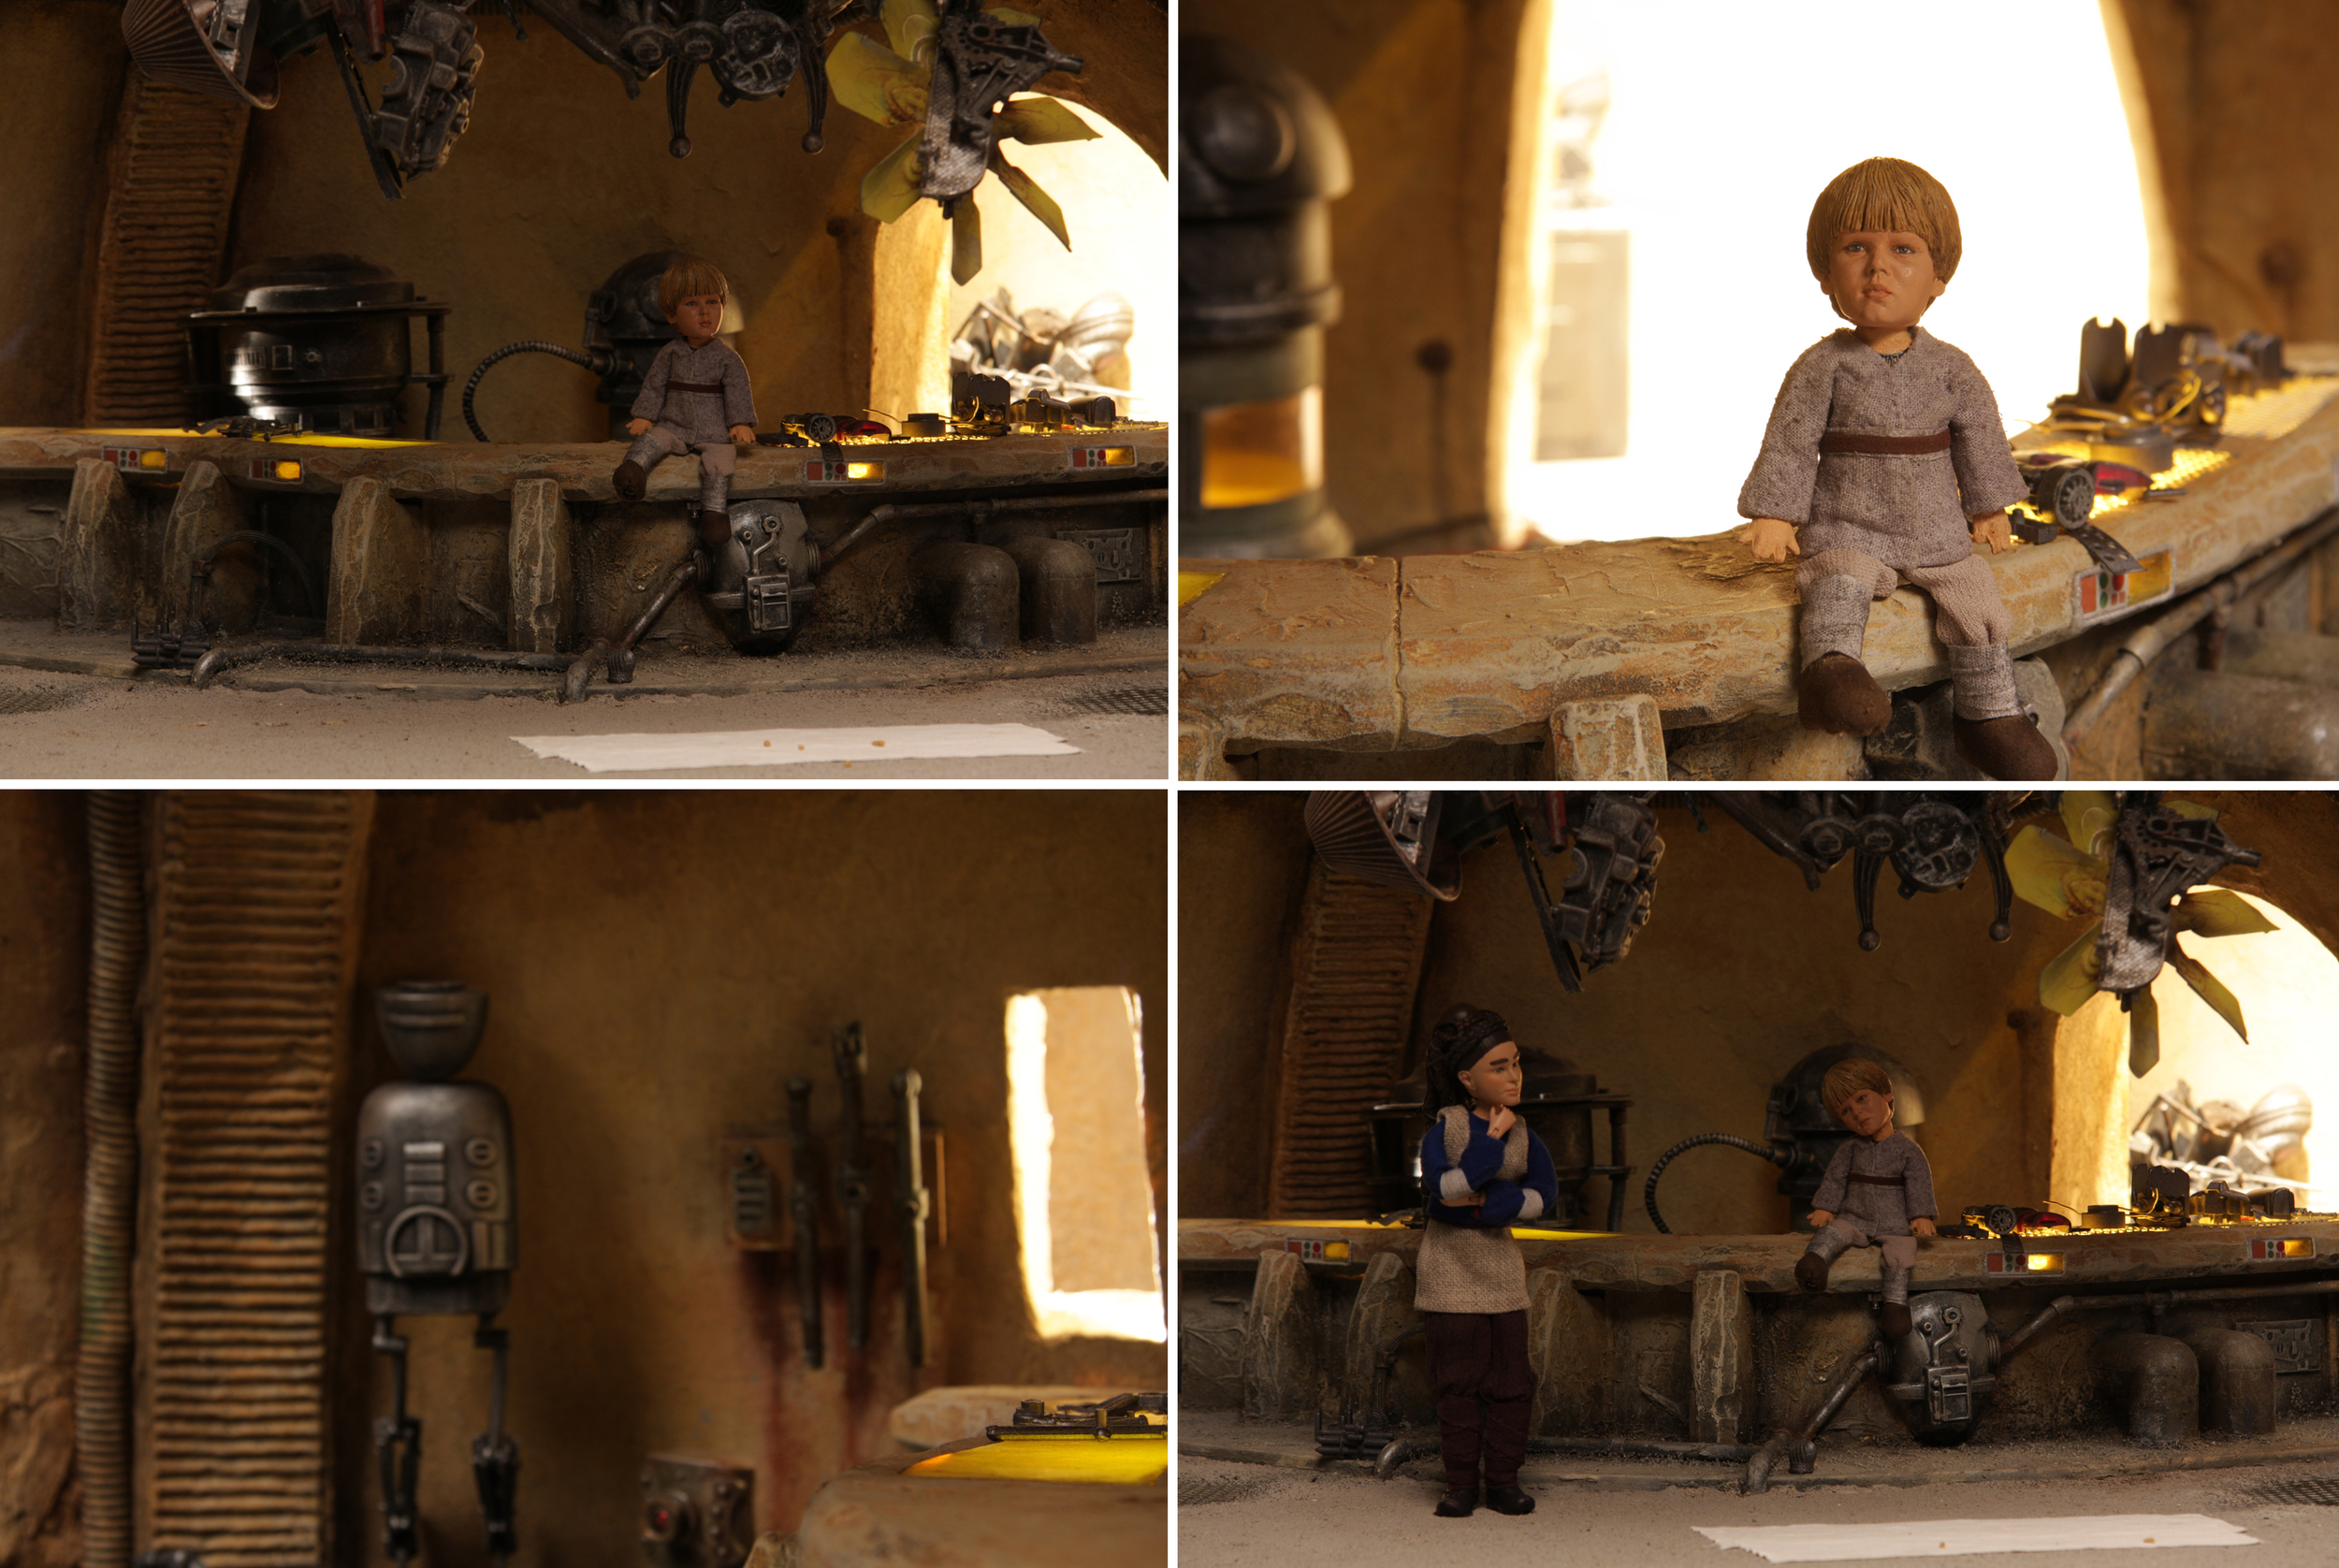 Robot Chicken Star Wars 3 Image 50.jpg